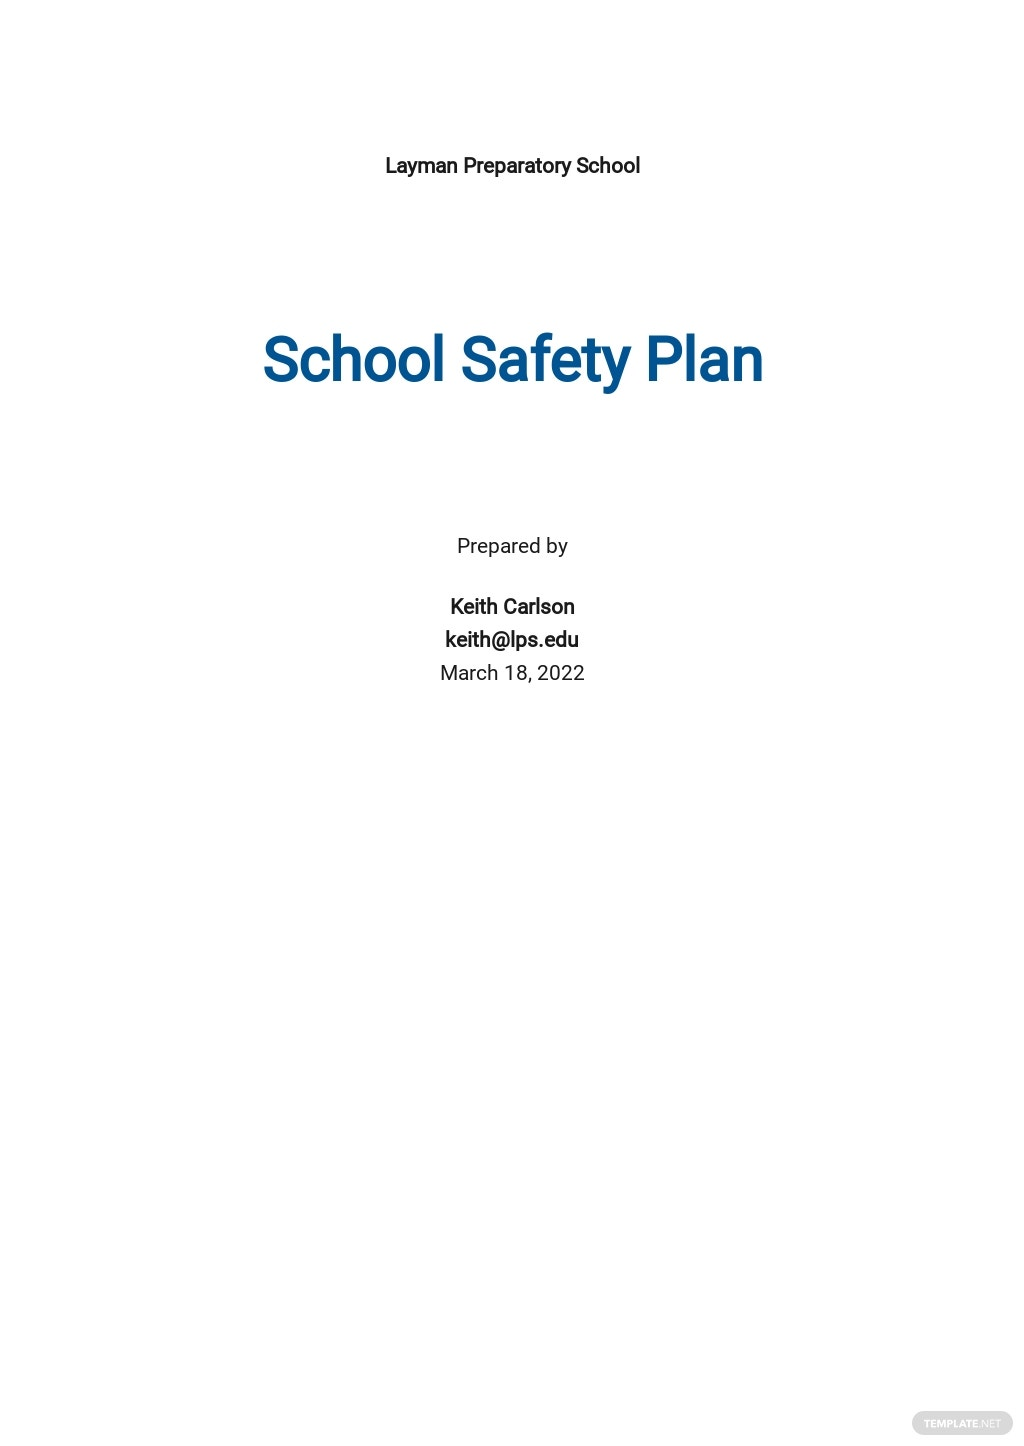 School Safety Plan Template.jpe